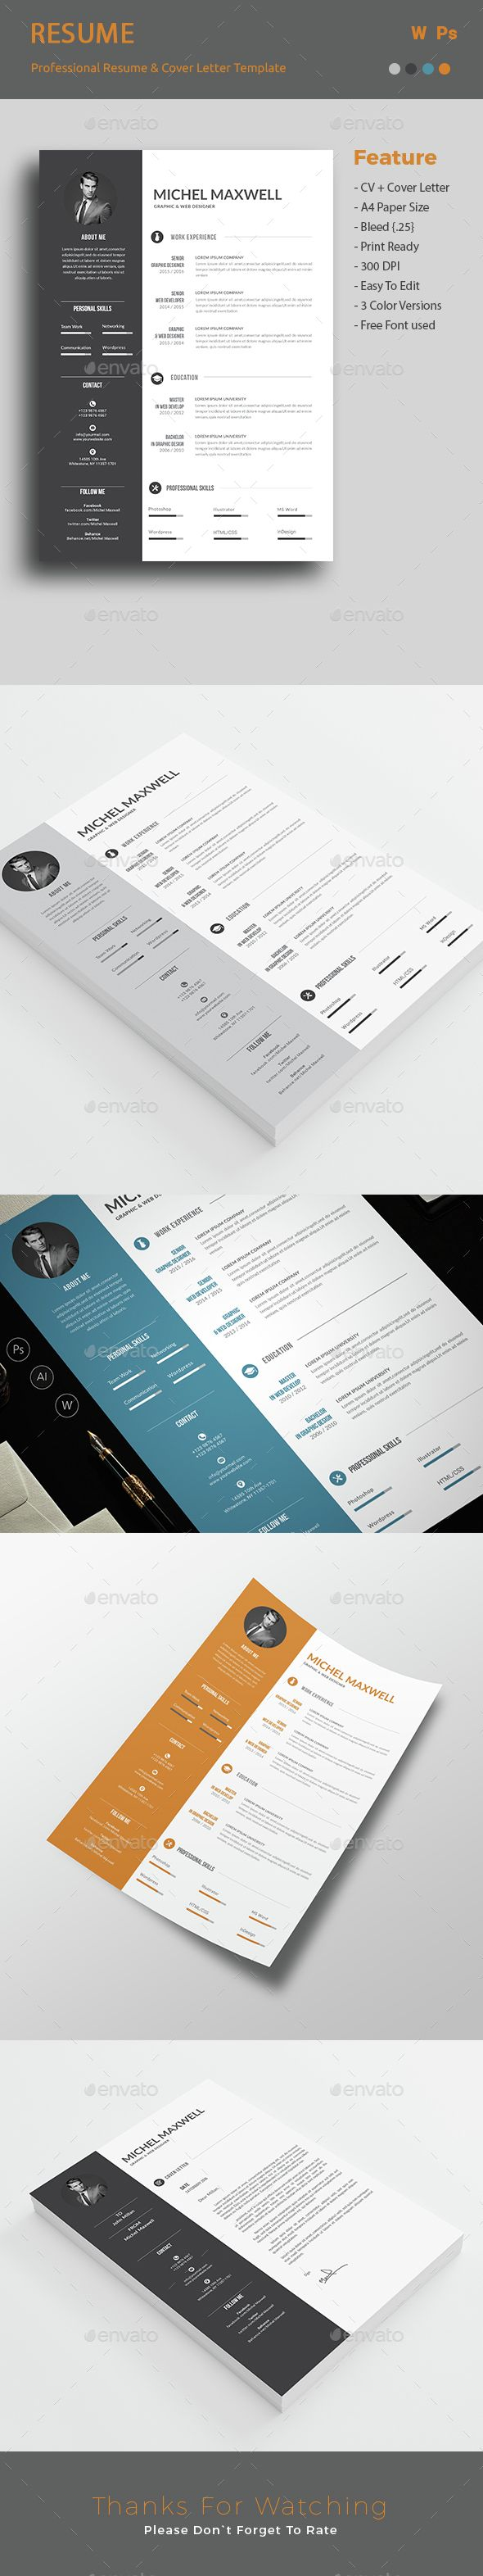 Resume Template PSD. Download here: http://graphicriver.net/item/resume/15189647?ref=ksioks